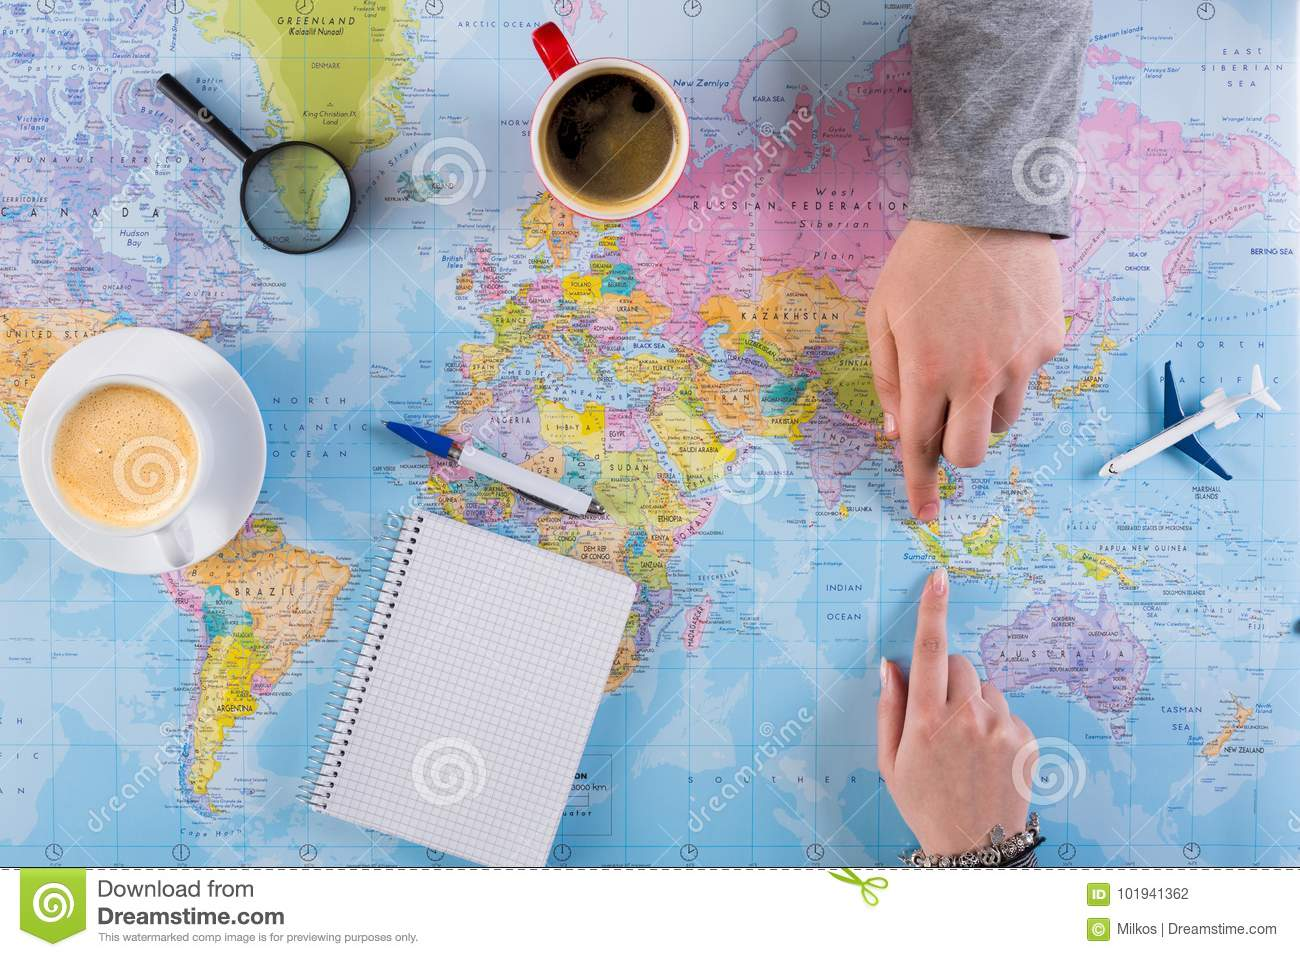 Couple planning trip to Indonesia, point on map